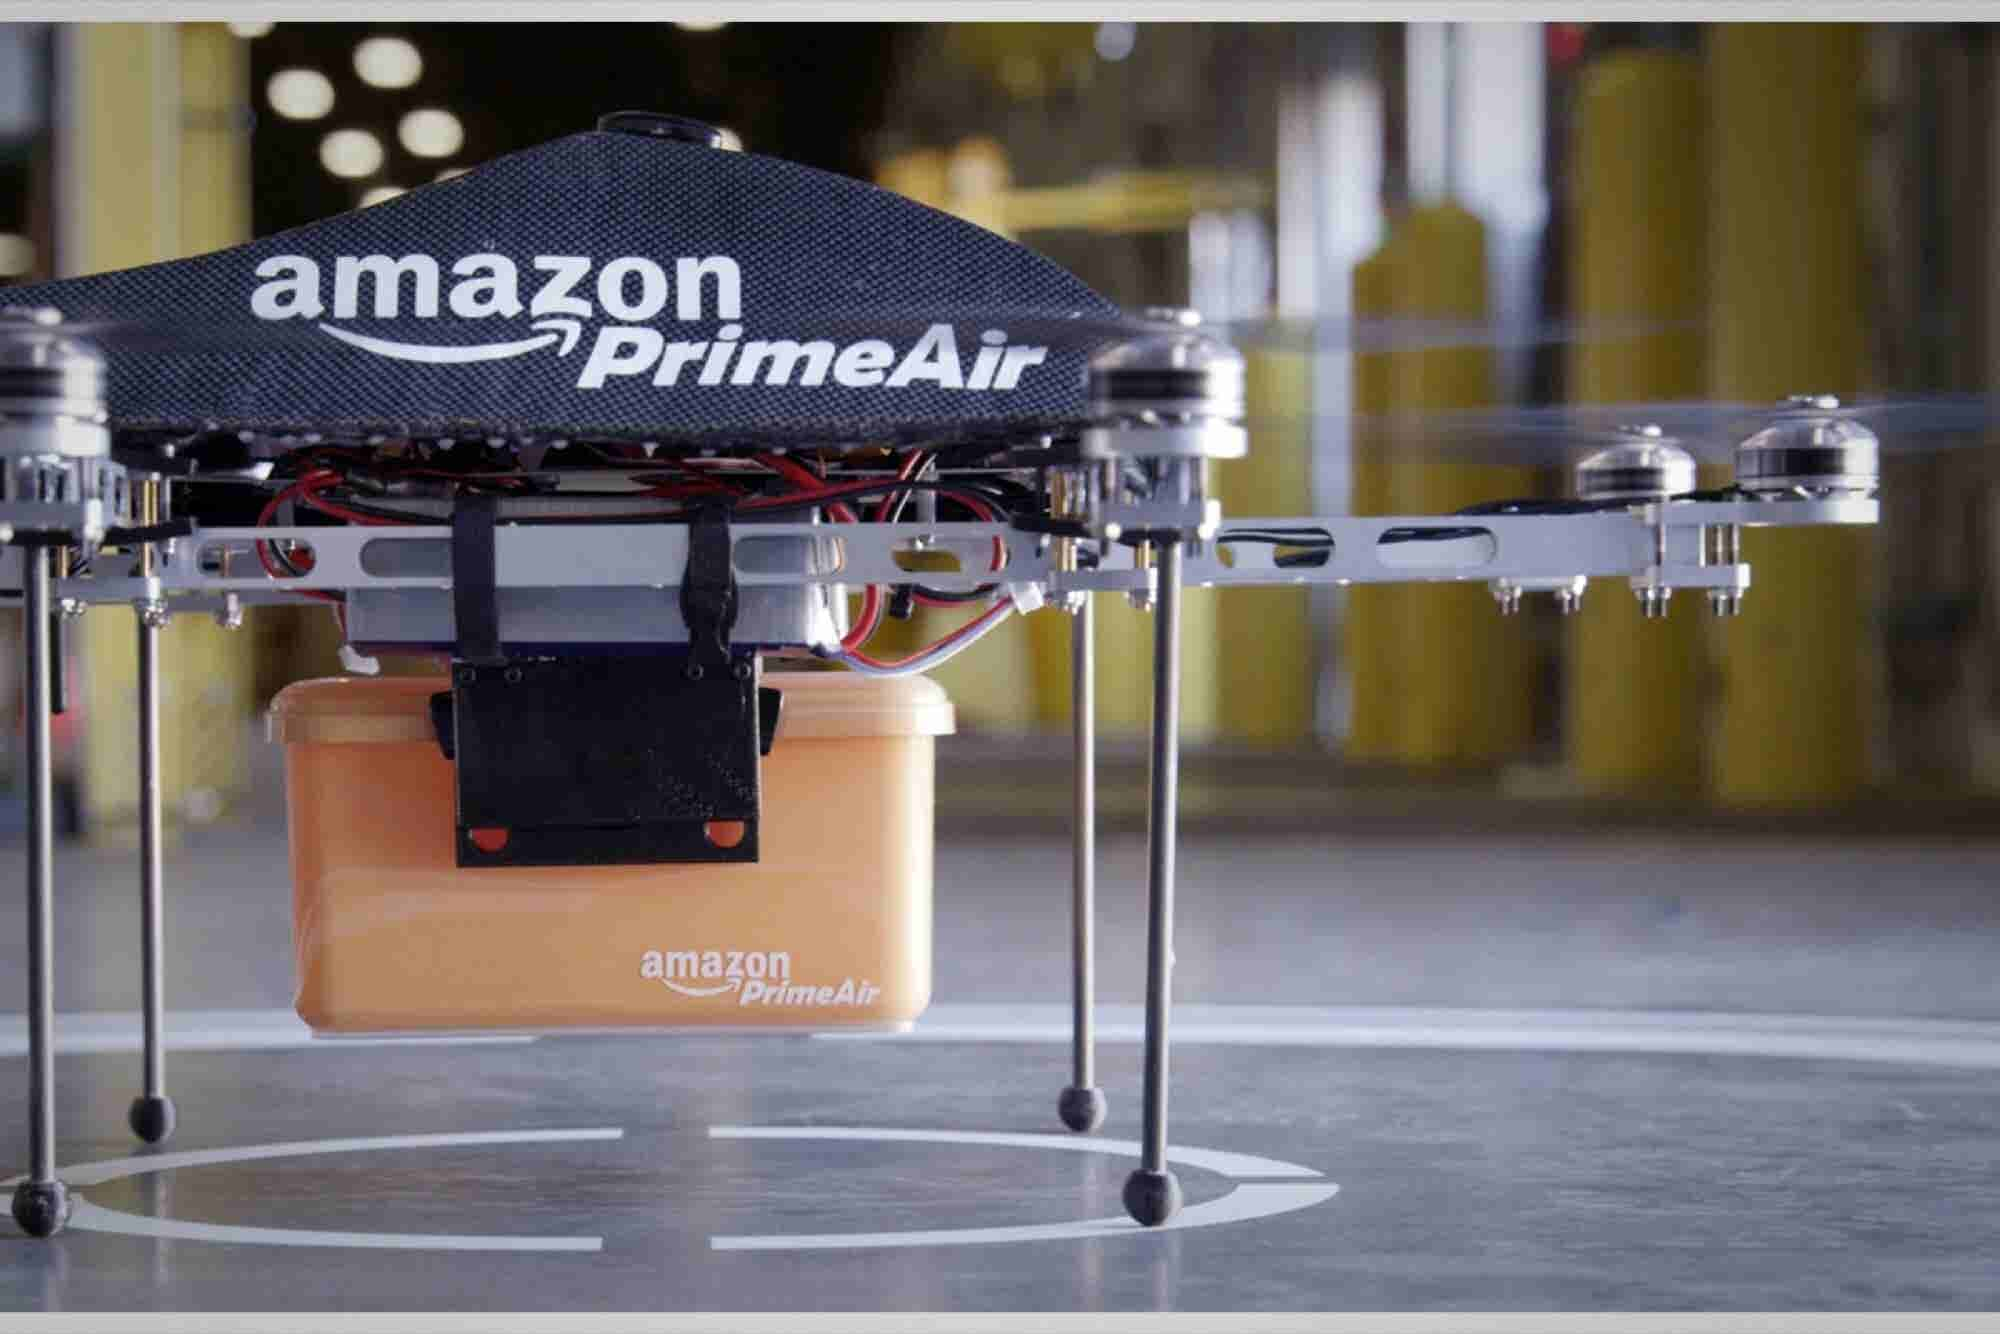 Amazon Insists Federal Rules Apply to U.S. Deliveries by Drone